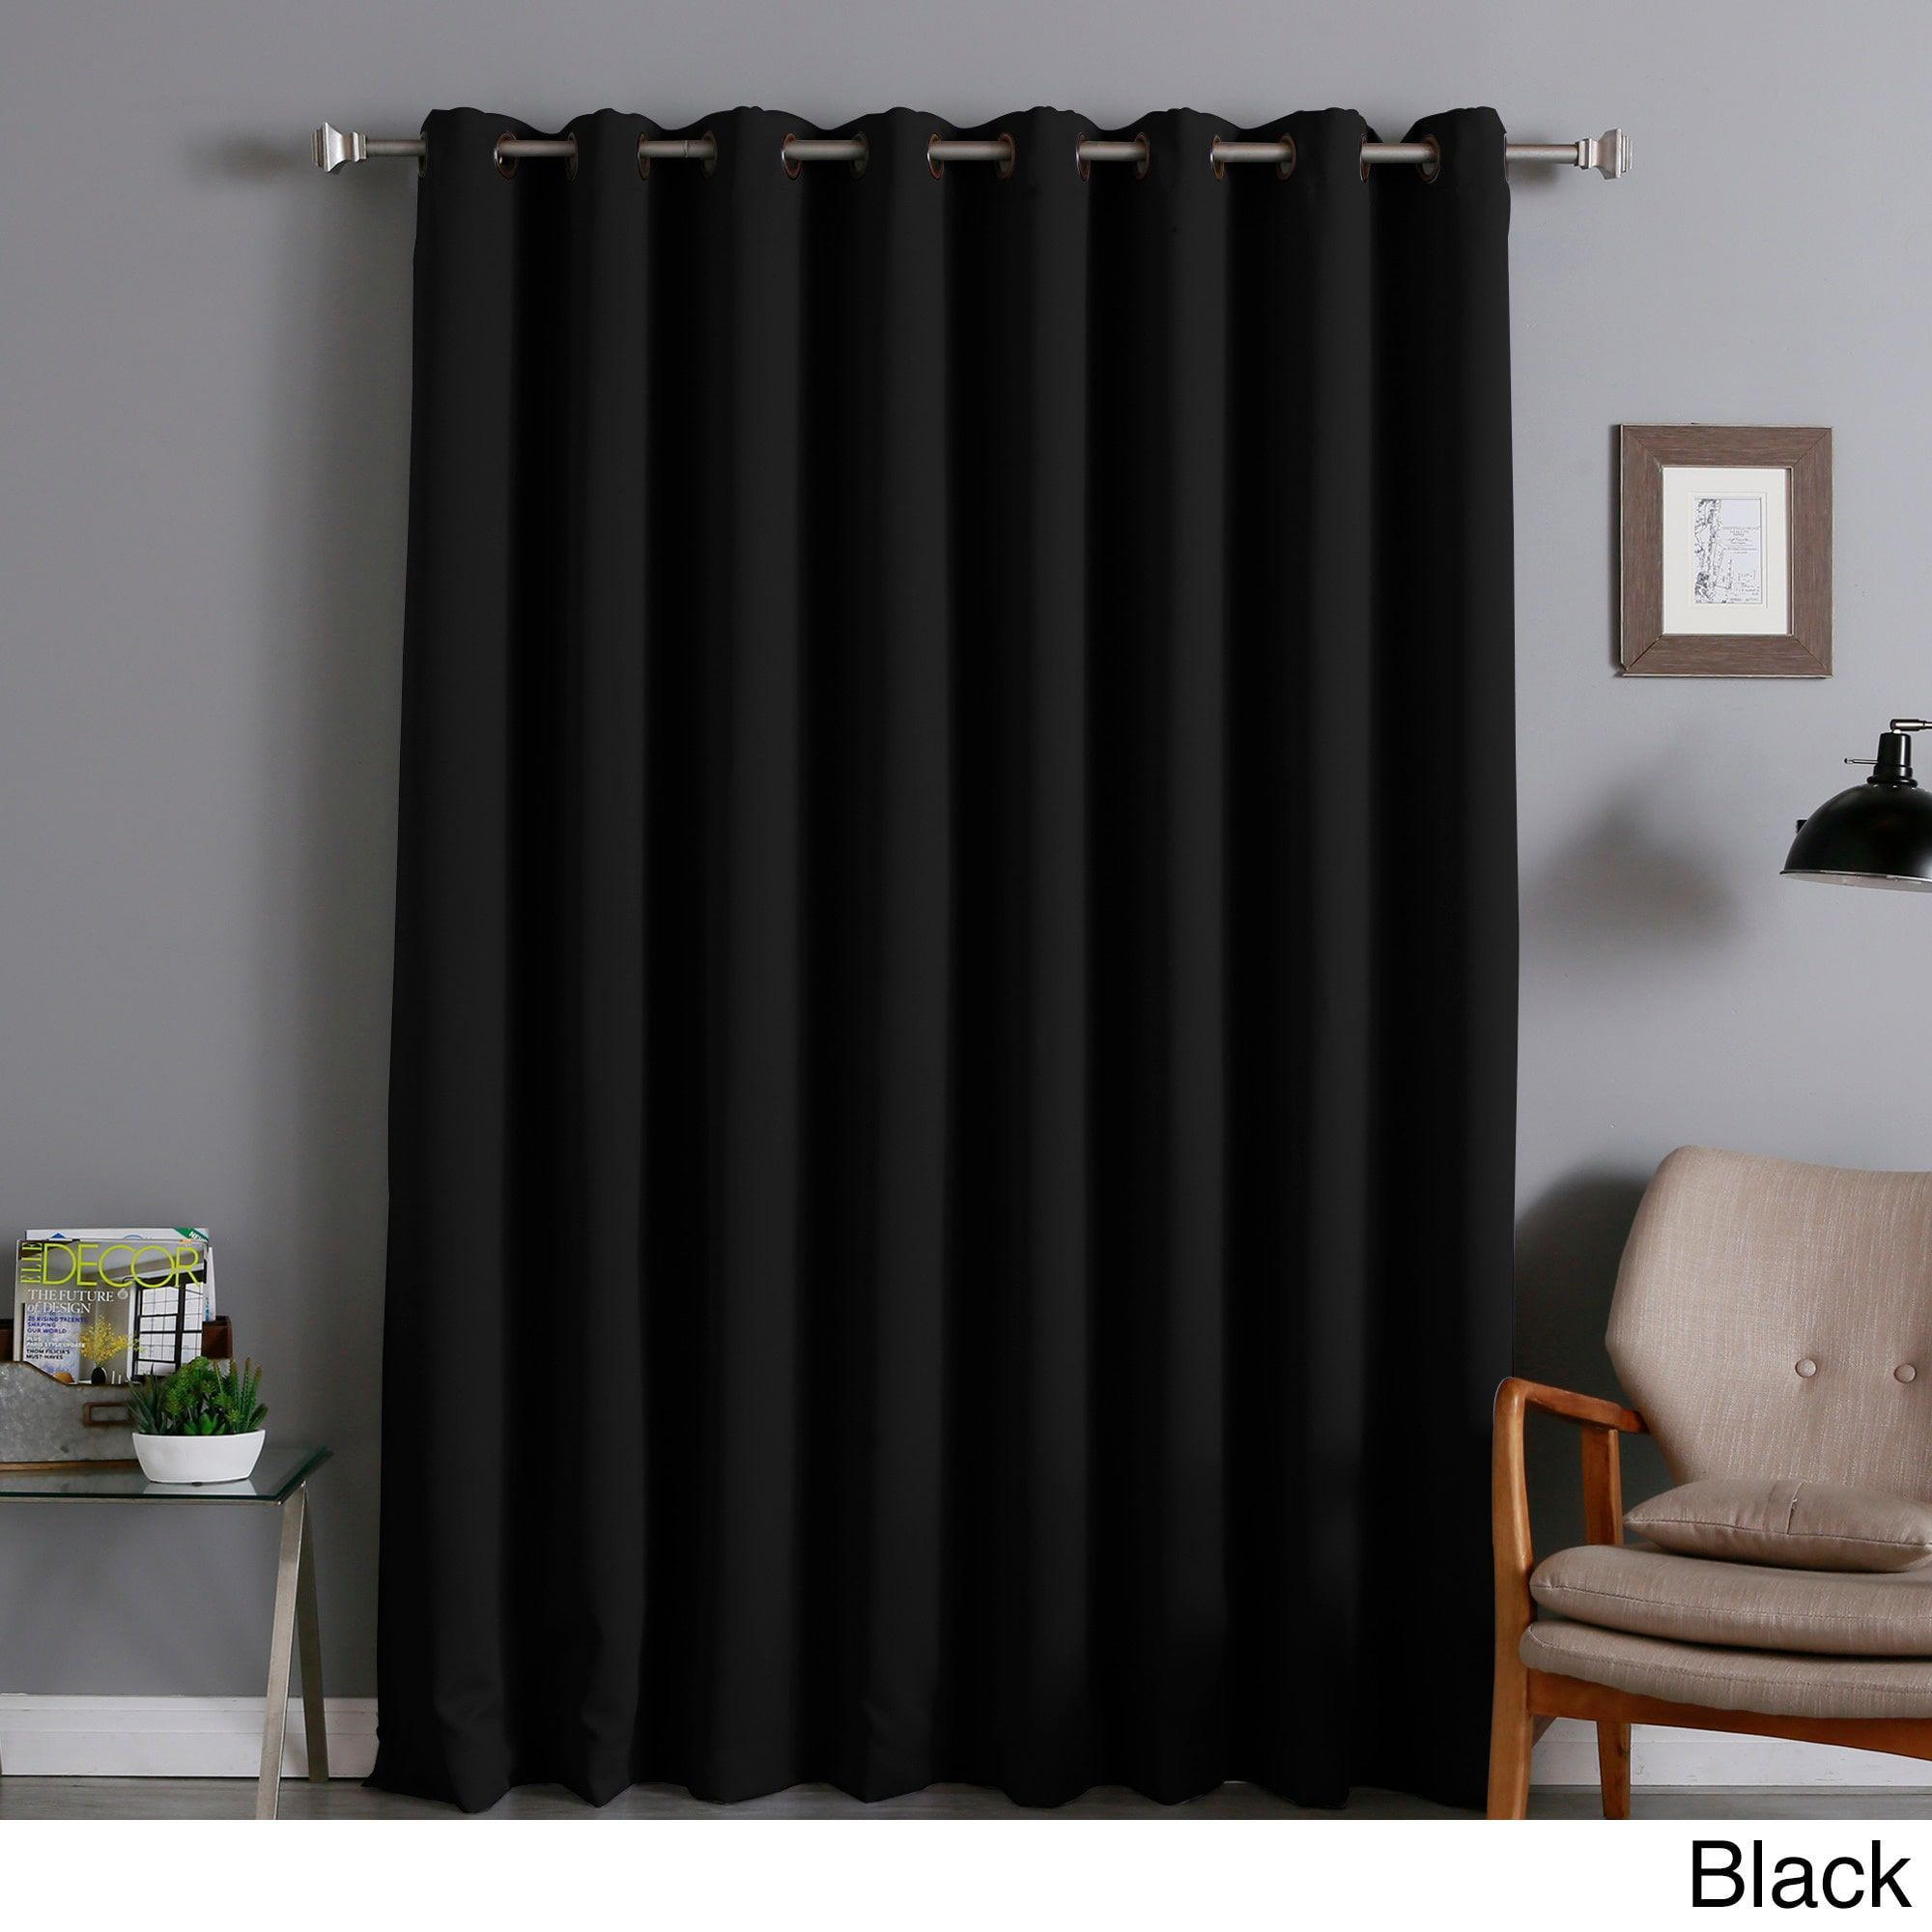 heat retardant window resistant fire curtain curtains treatments materials